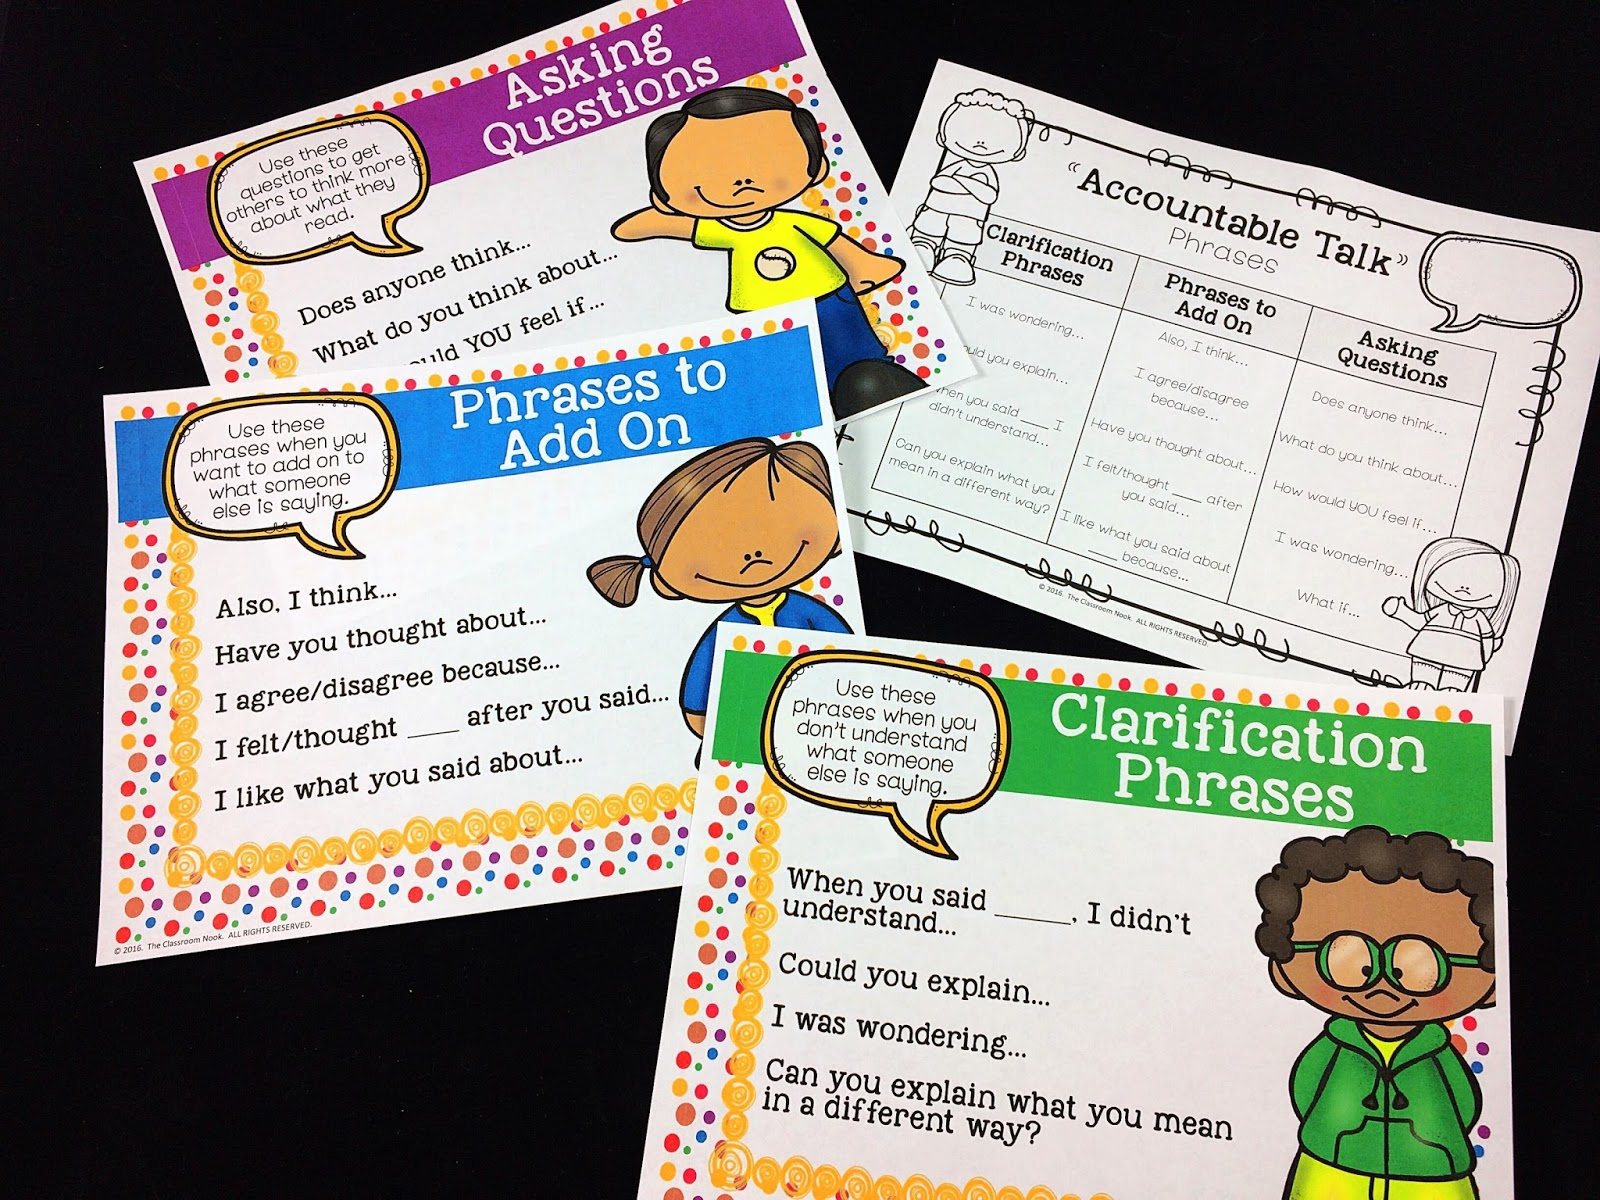 Accountable talk is a discussion format that helps guides students in having meaningful conversations with one another.